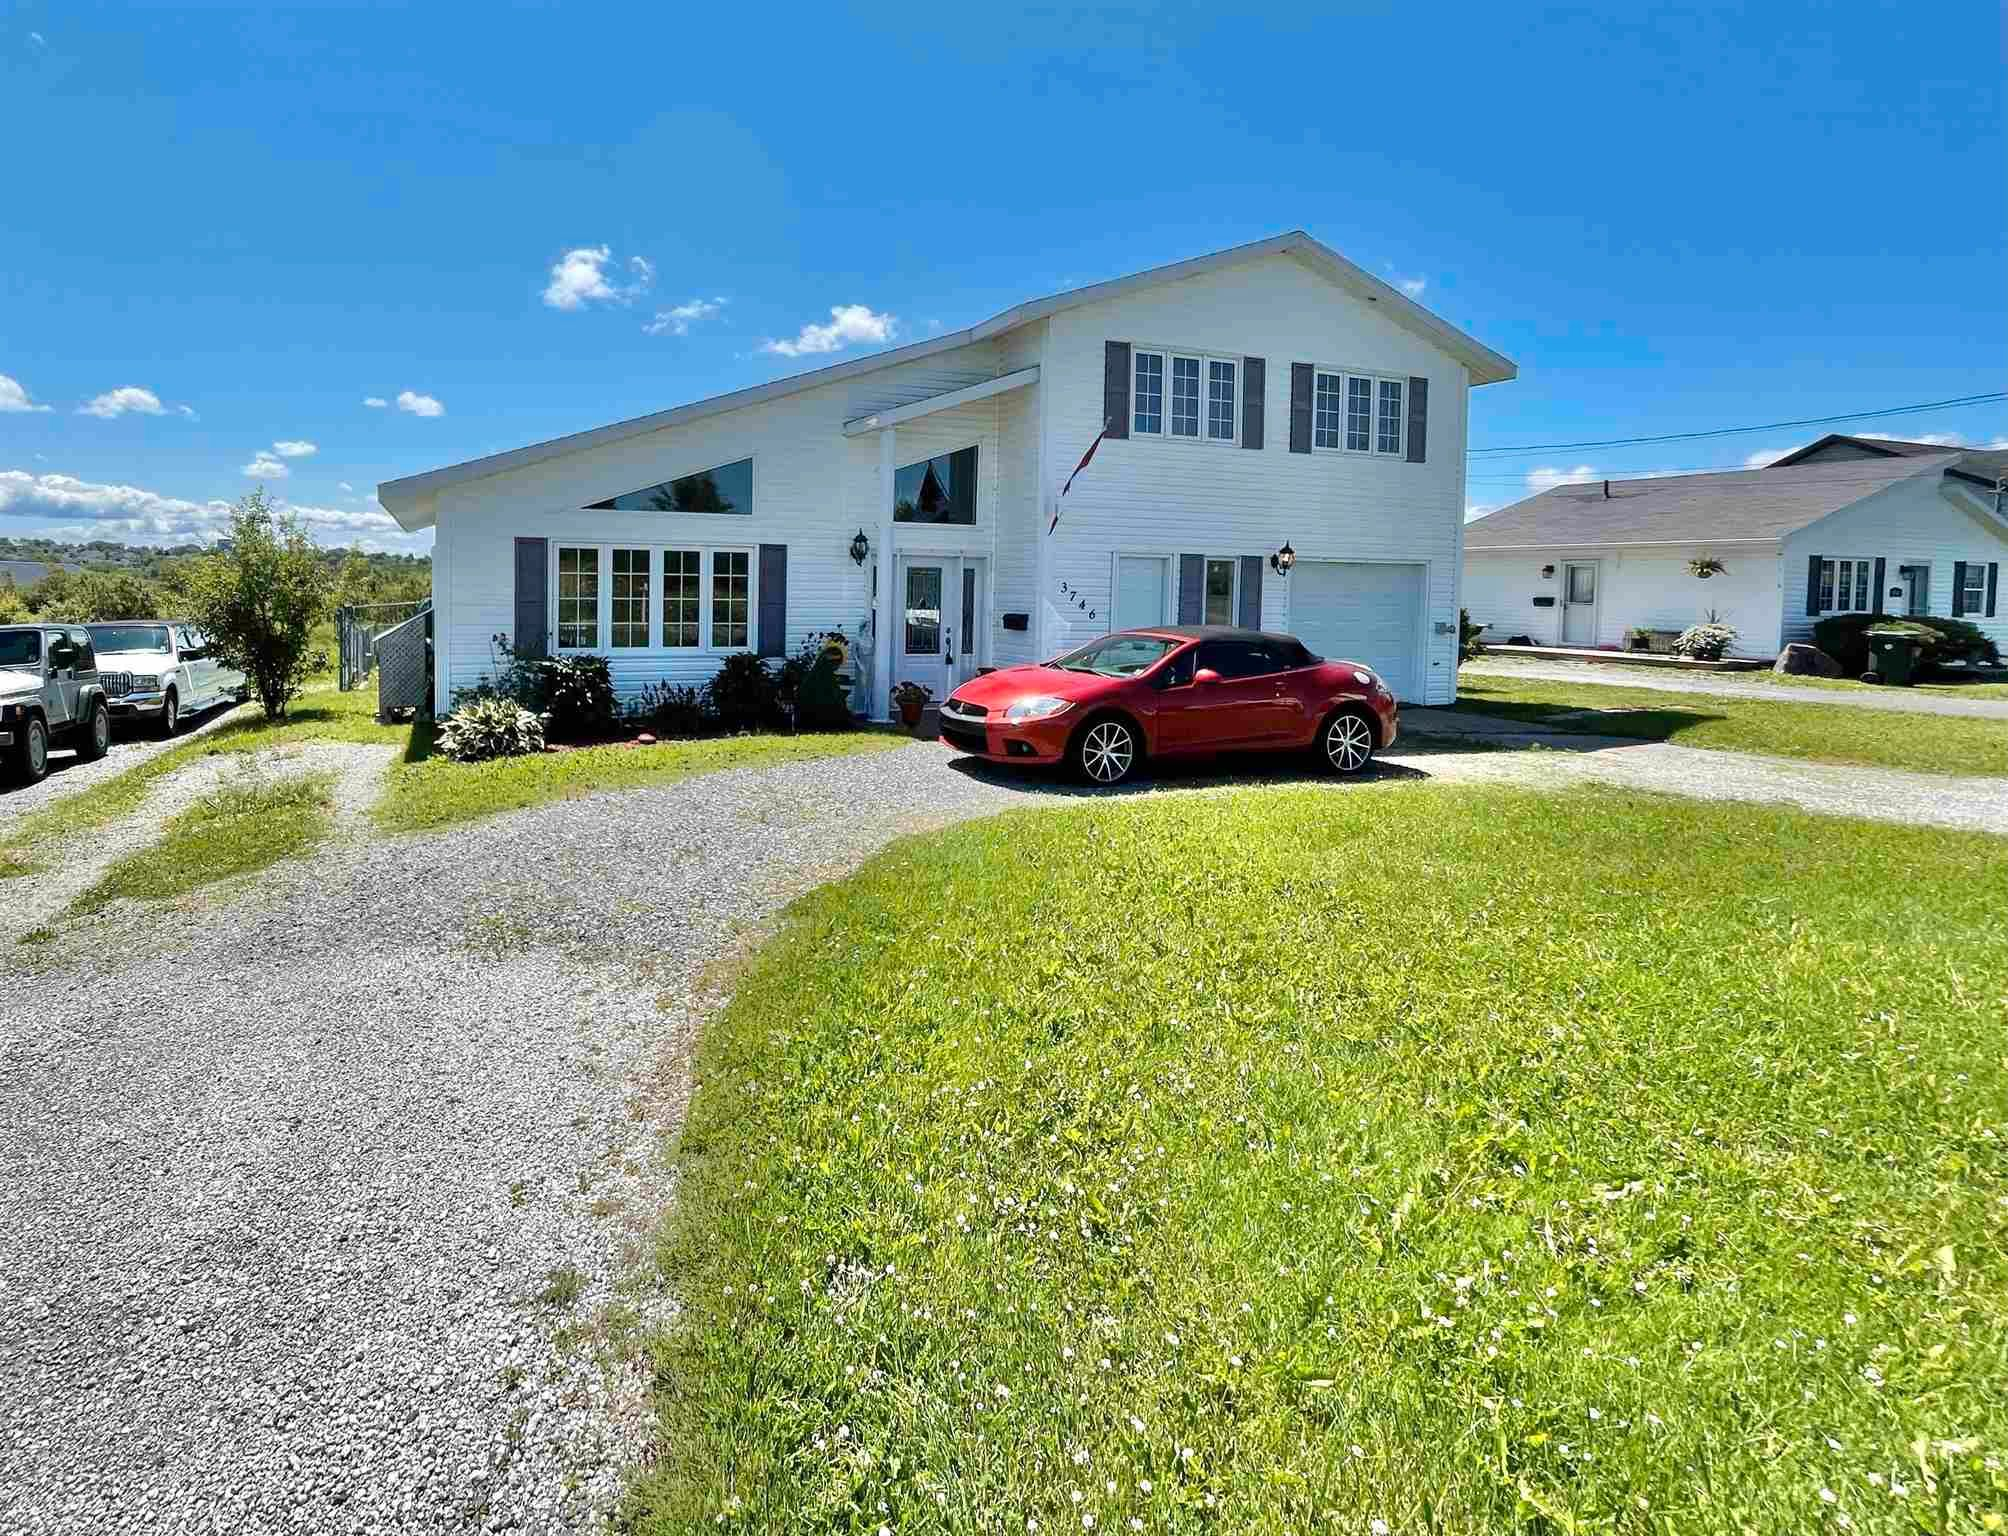 Main Photo: 3746 Connors Avenue in New Waterford: 204-New Waterford Residential for sale (Cape Breton)  : MLS®# 202116856